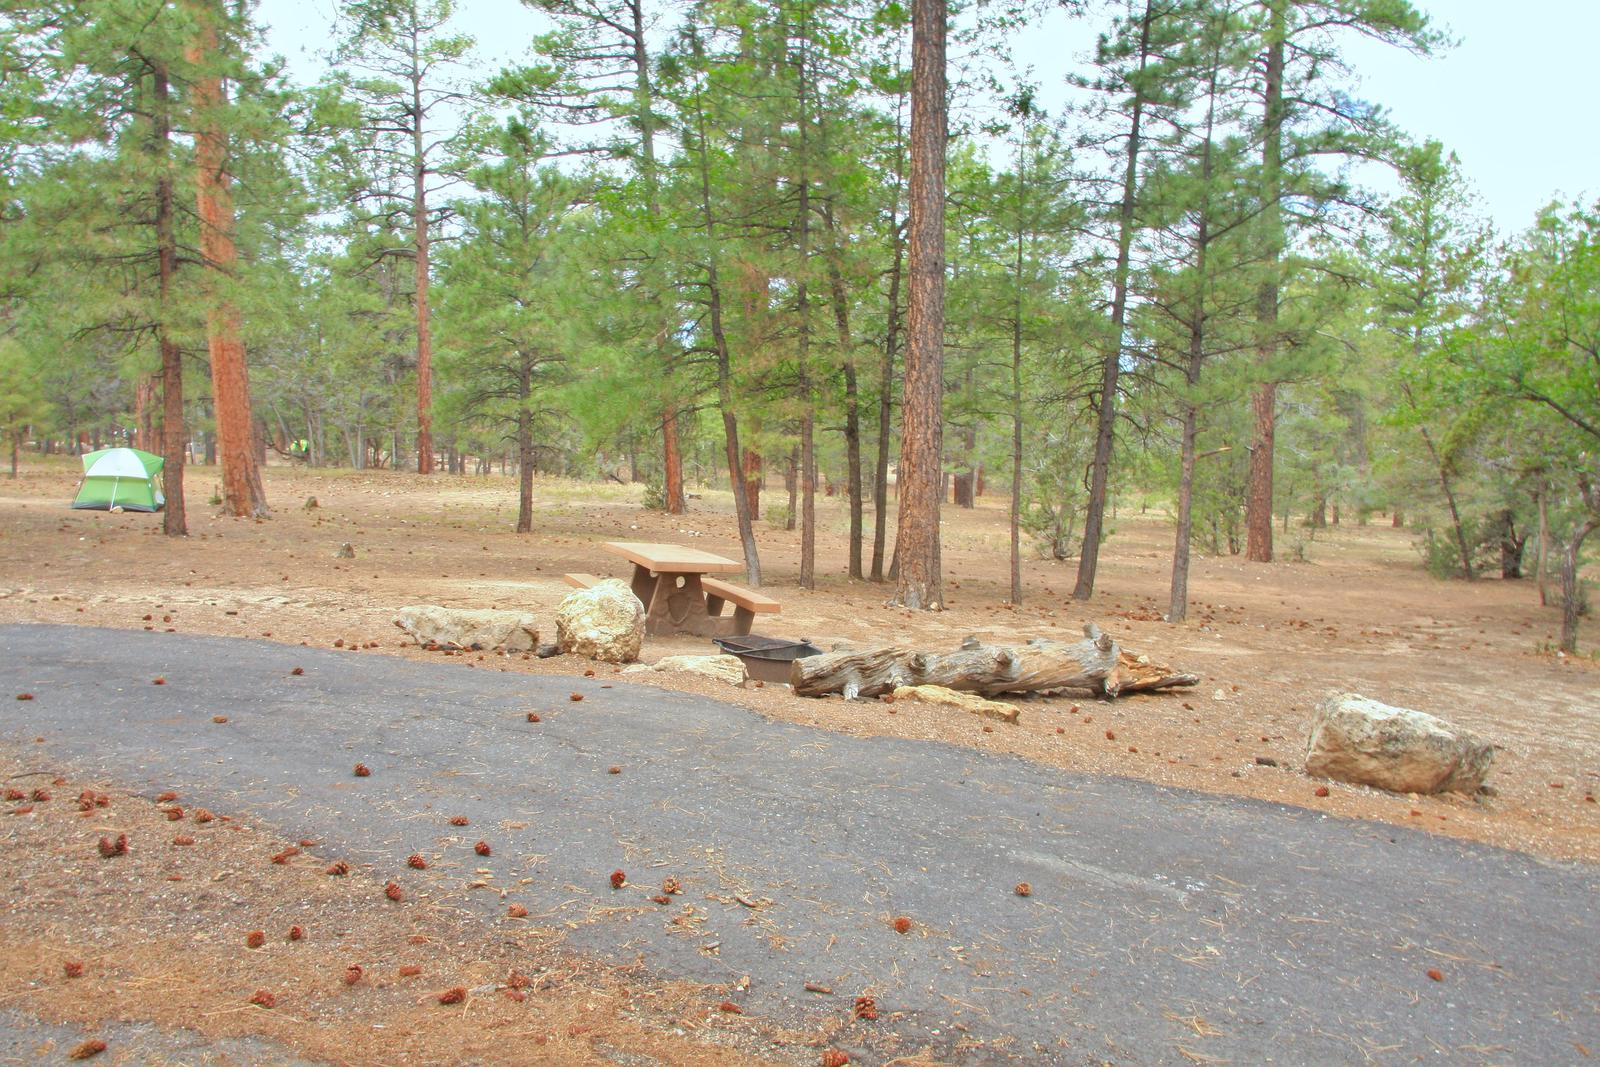 Picnic table, fire pit, and parking spot, Mather CampgroundThe picnic table, fire pit, and parking spot for Aspen Loop 5 Mather Campground